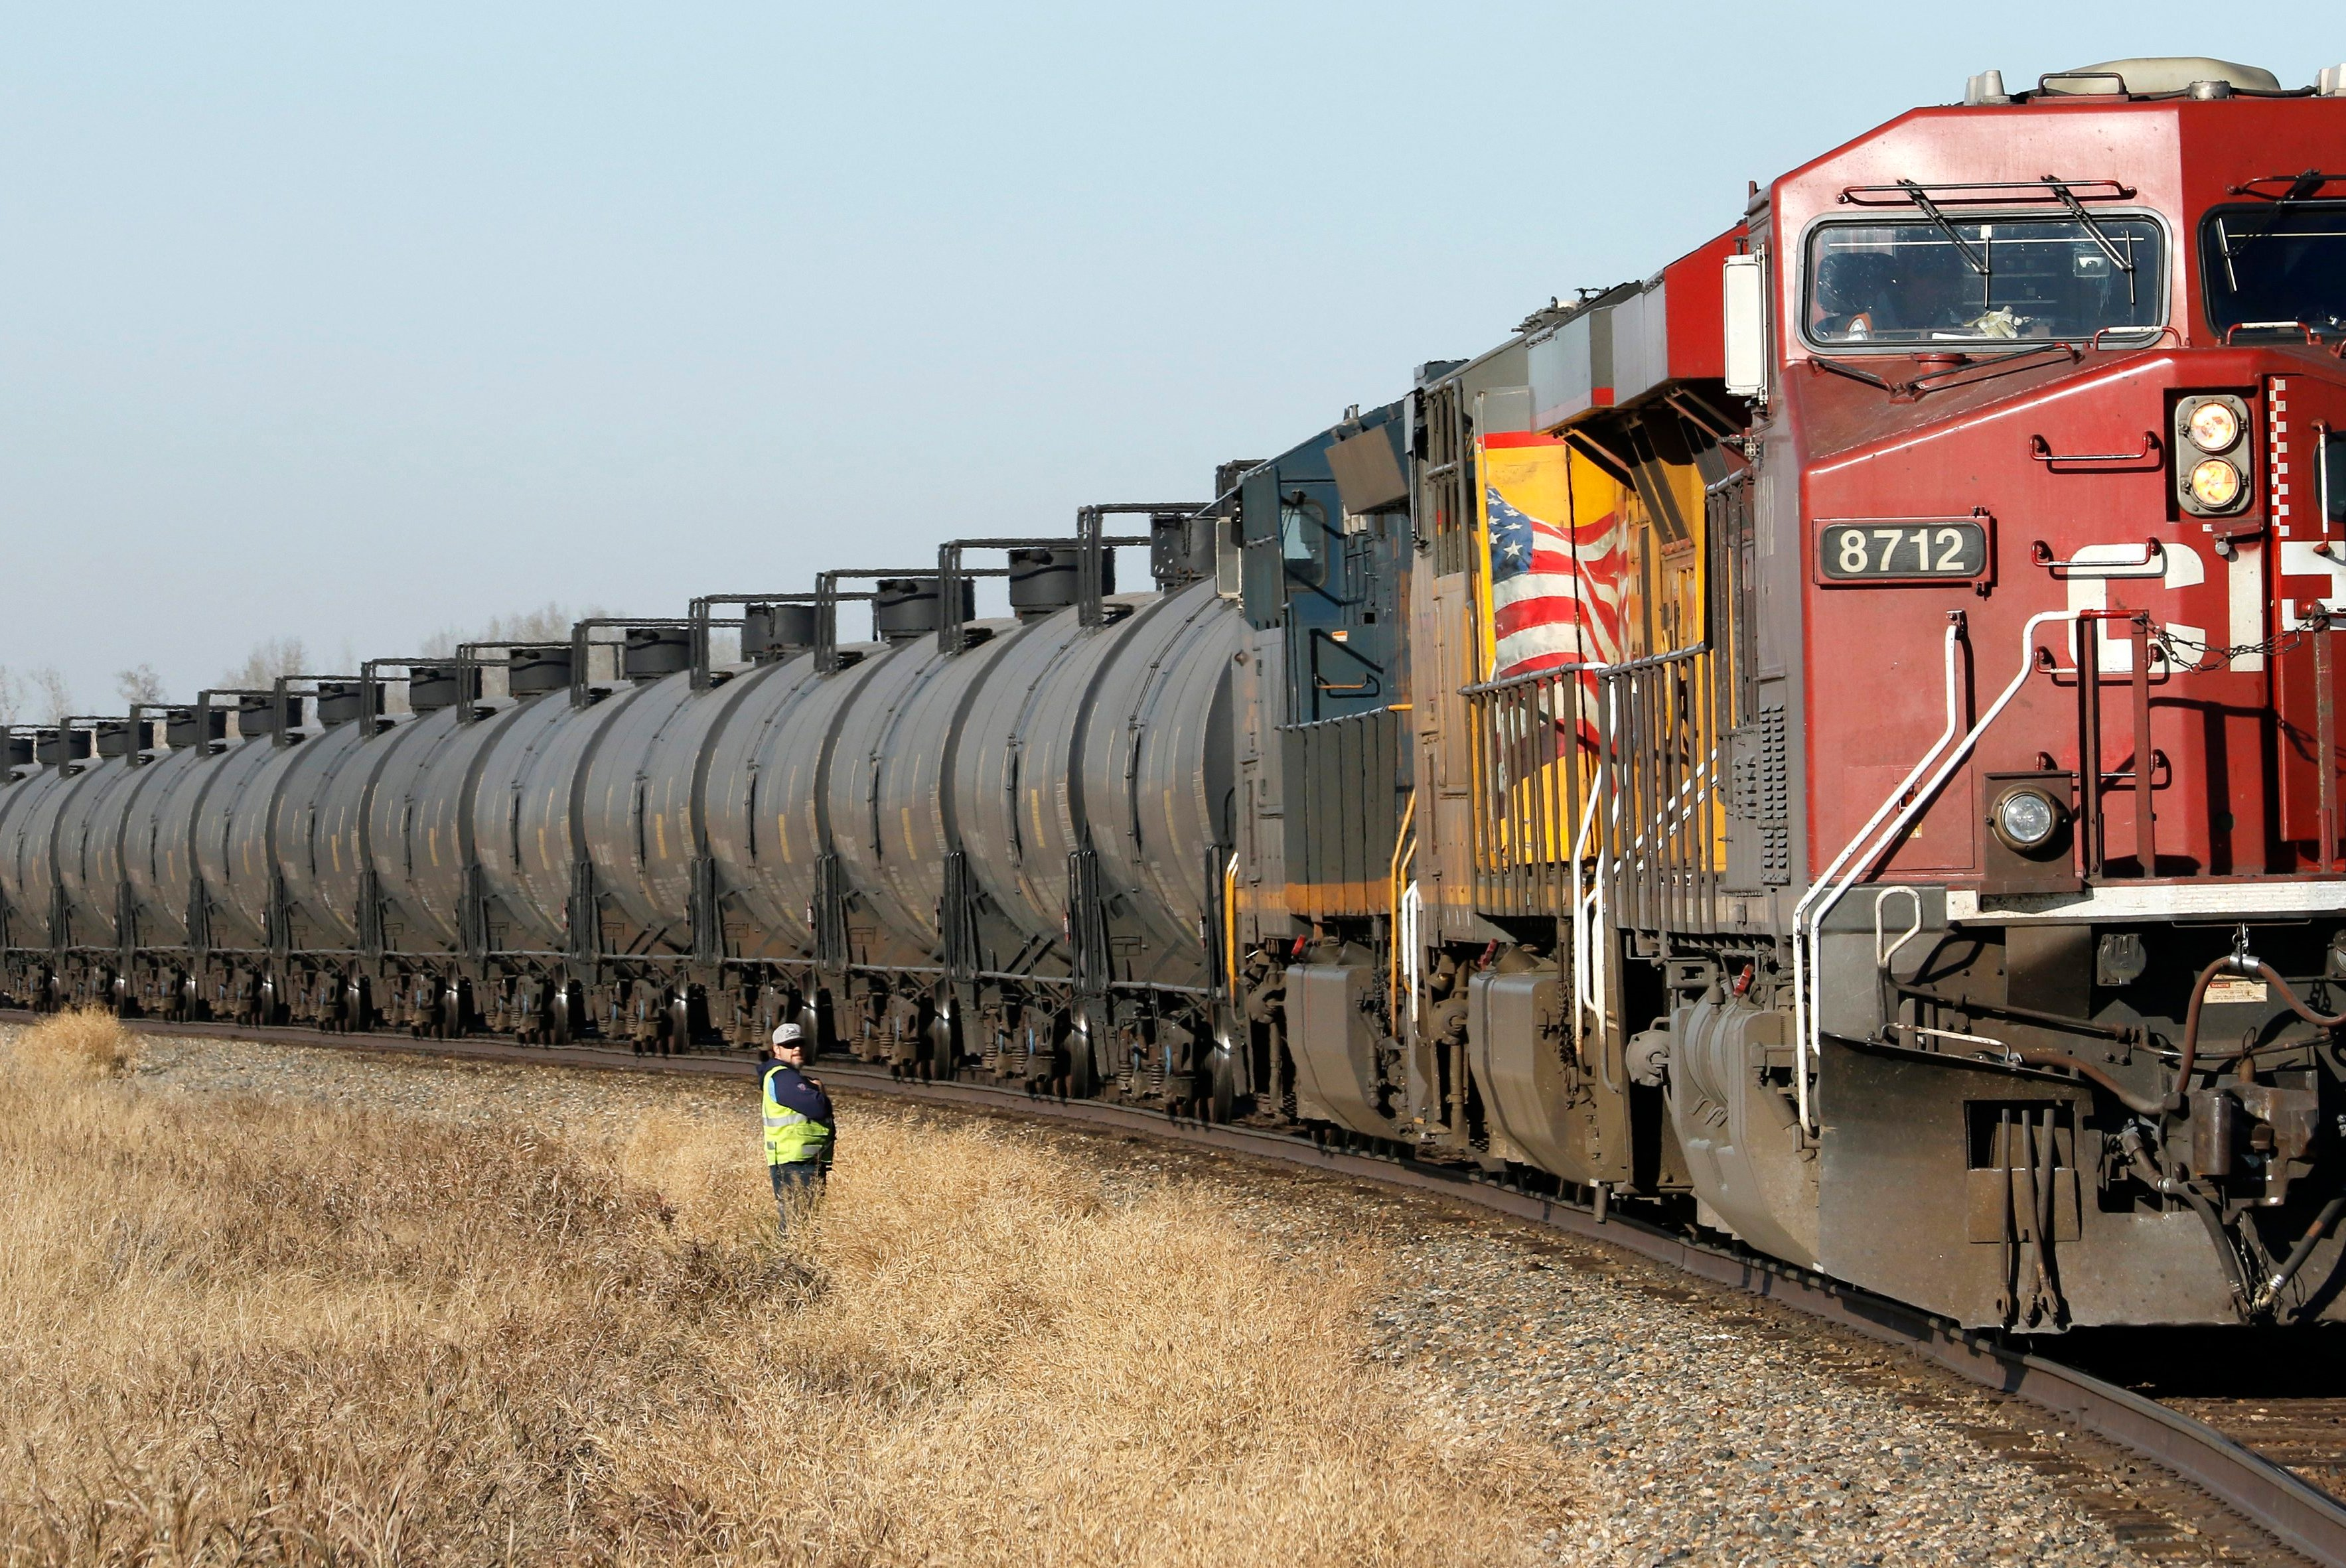 Crude oil, and other petroleum products, are transported in rail tanker cars on a Canadian Pacific Railway (CPR) train near Olds, Alberta, Canada on Tues., Oct. 23, 2018.